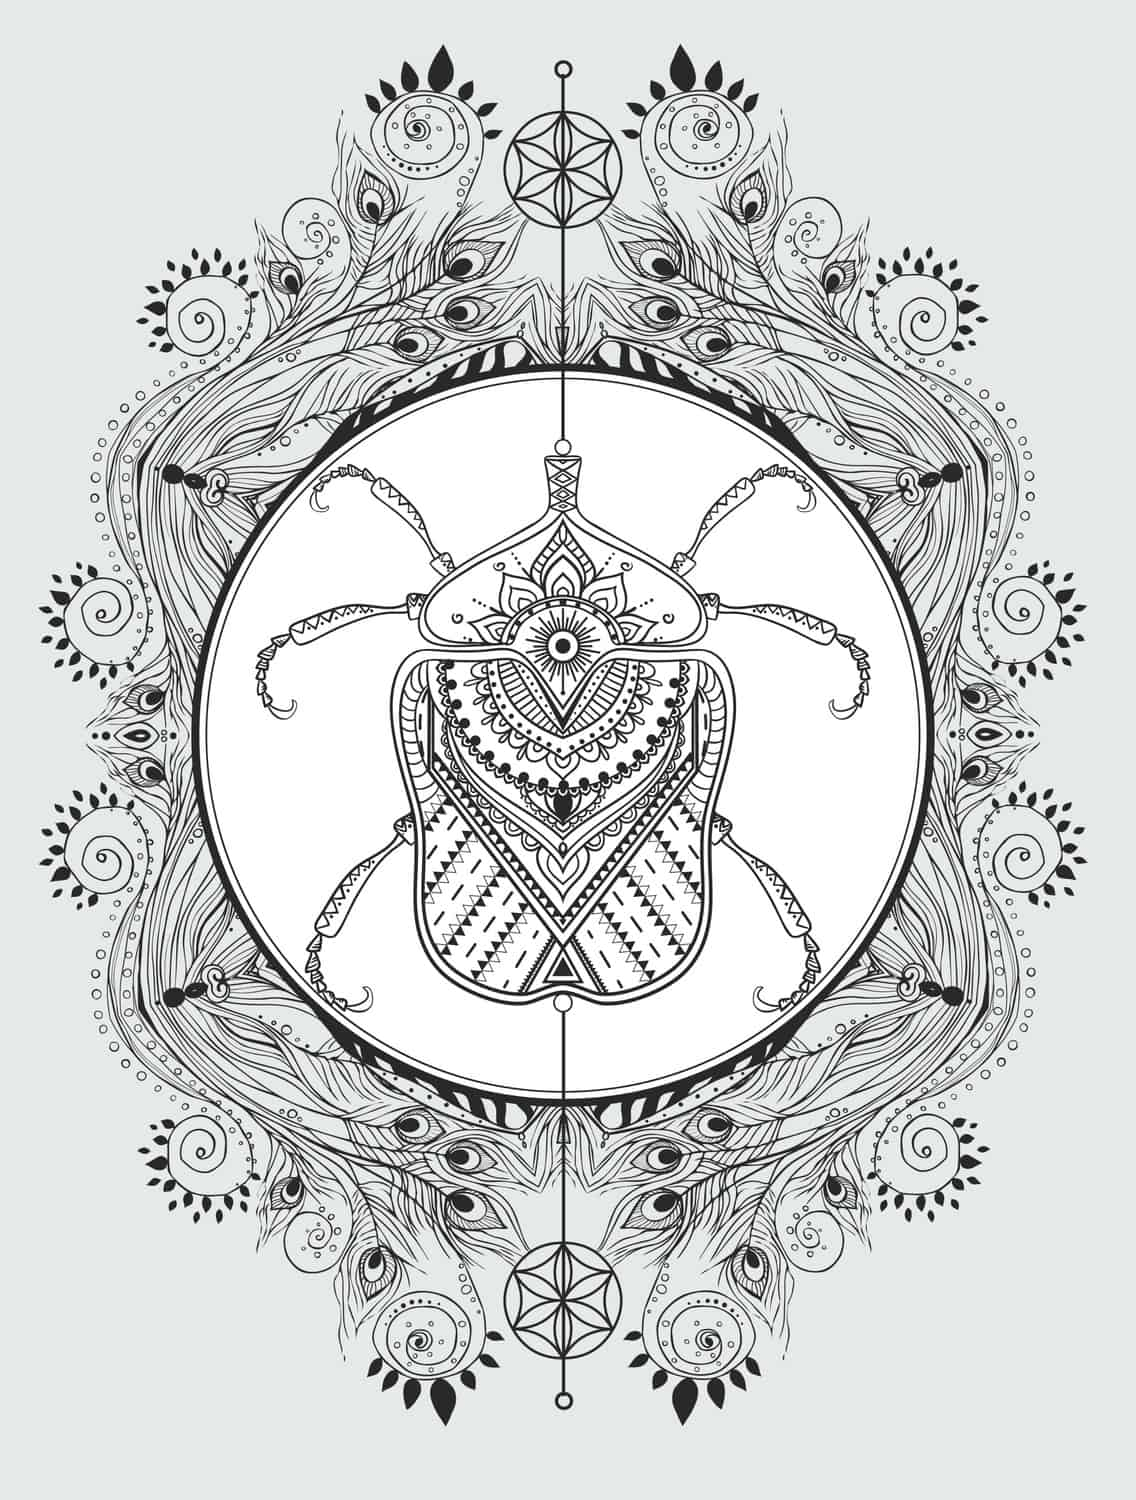 23 Free Printable Insect & Animal Adult Coloring Pages - Page 17 of ...